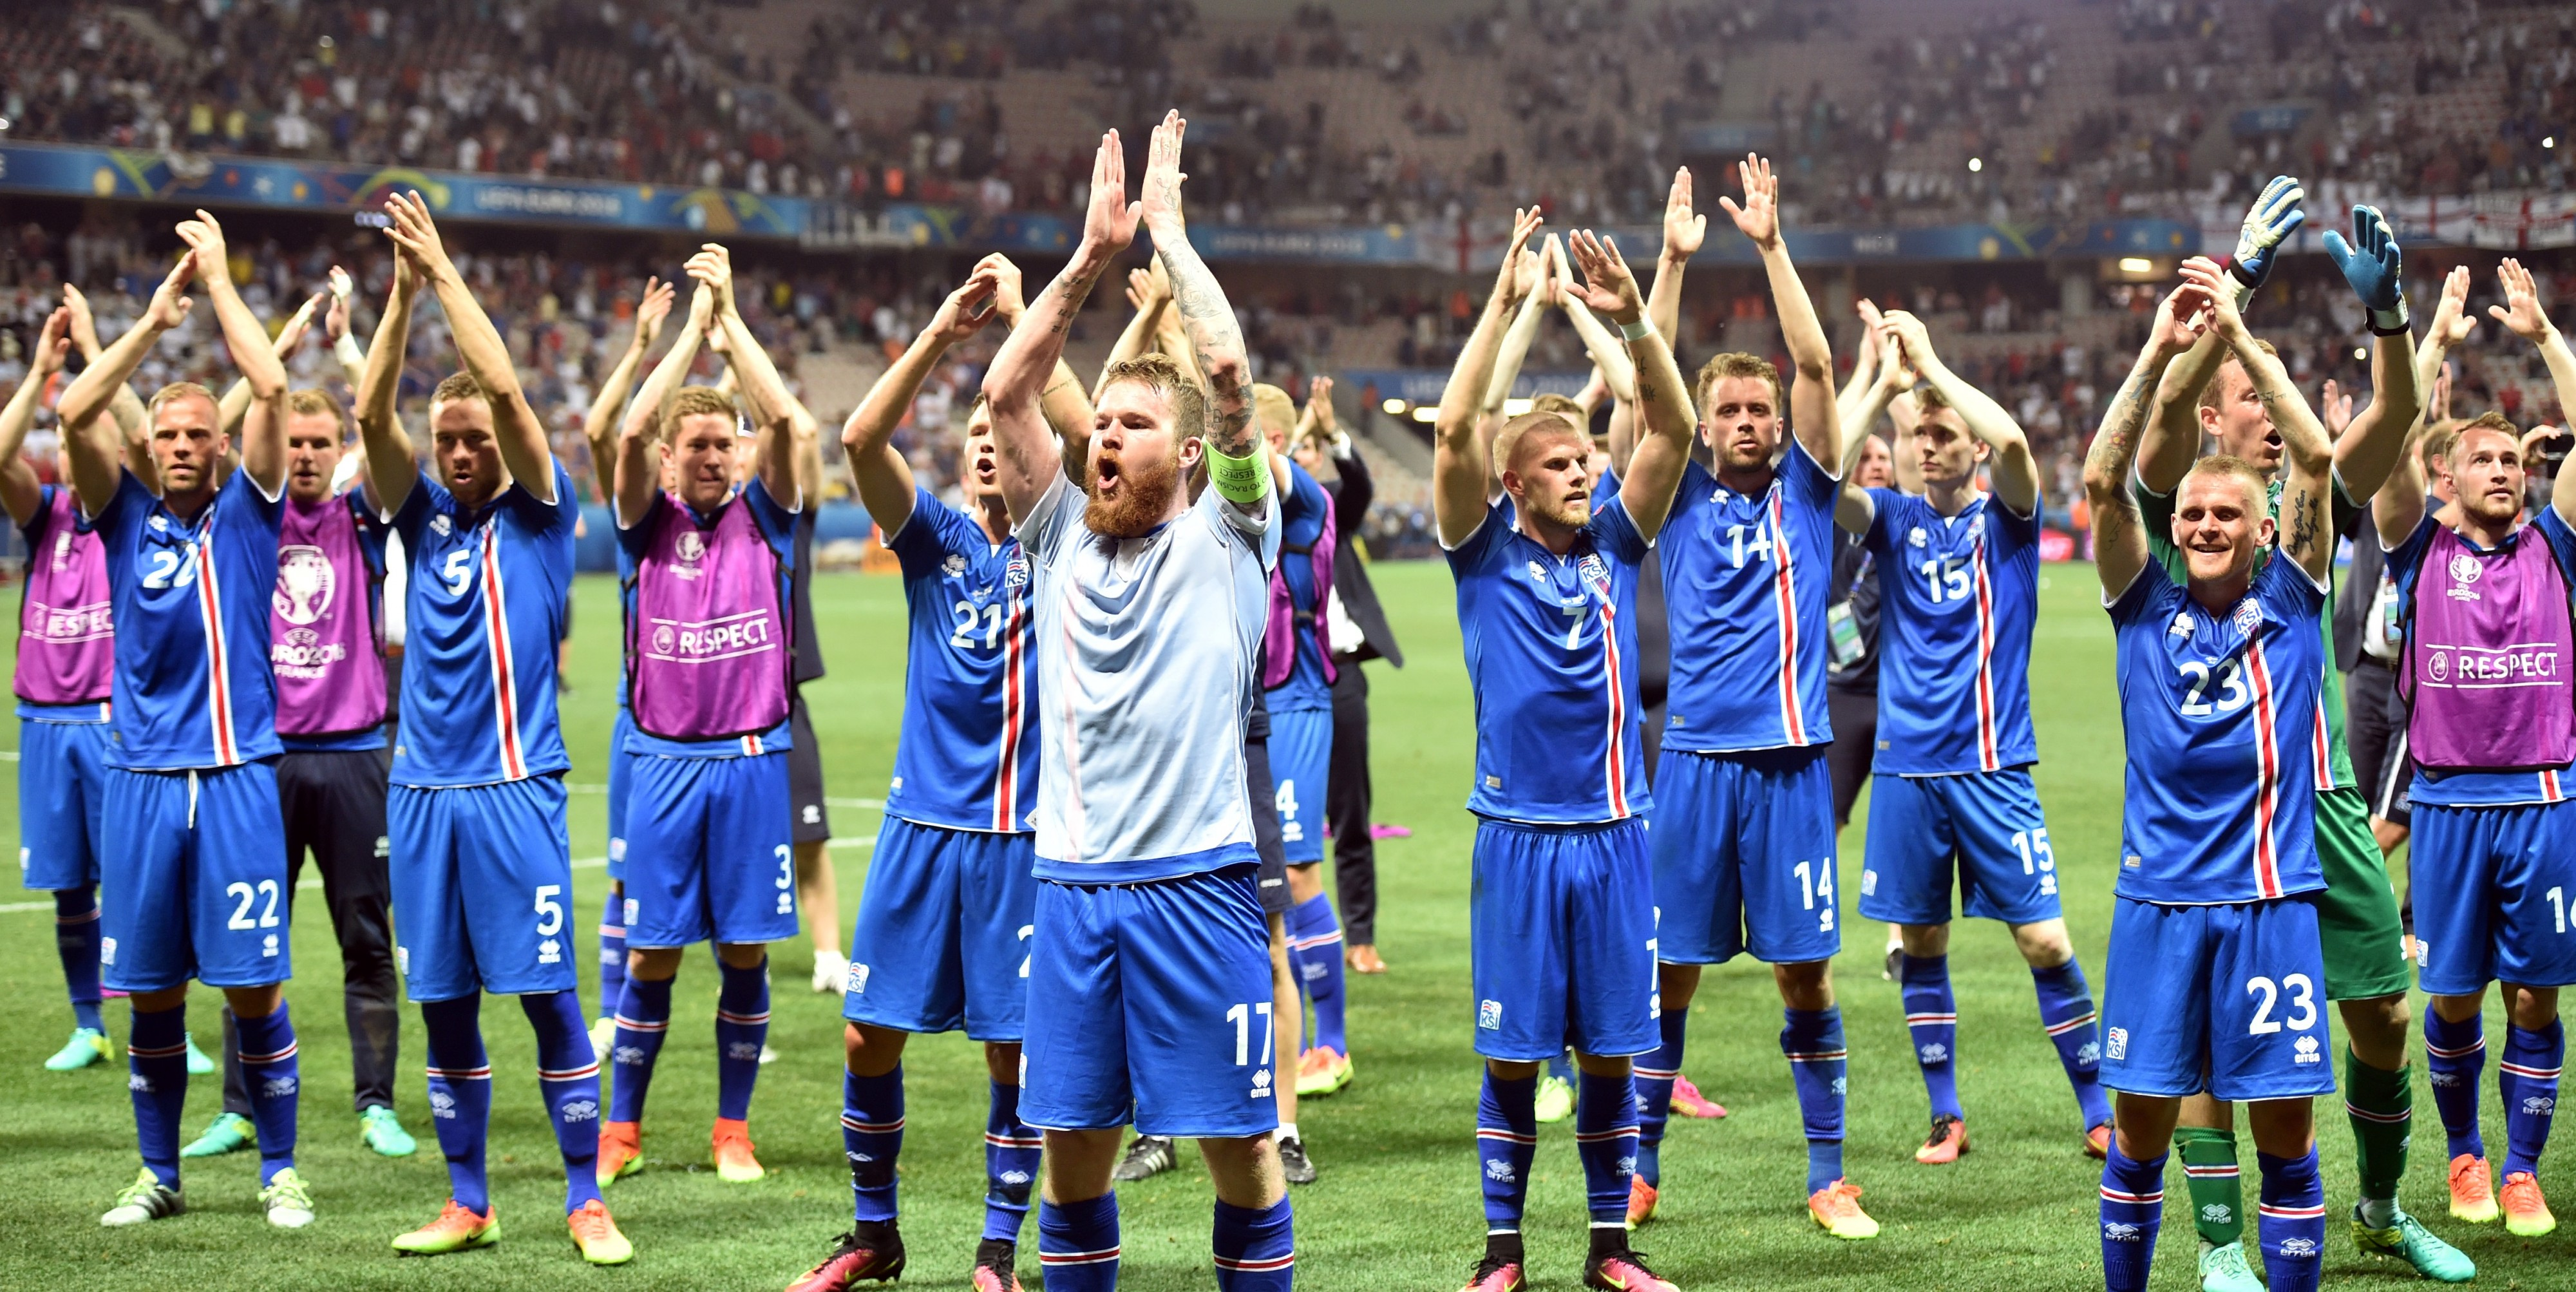 Iceland's players celebrate their team's win after the Euro 2016 round of 16 football match between England and Iceland at the Allianz Riviera stadium in Nice on June 27, 2016. Iceland won the match 1-2. / AFP PHOTO / BERTRAND LANGLOIS